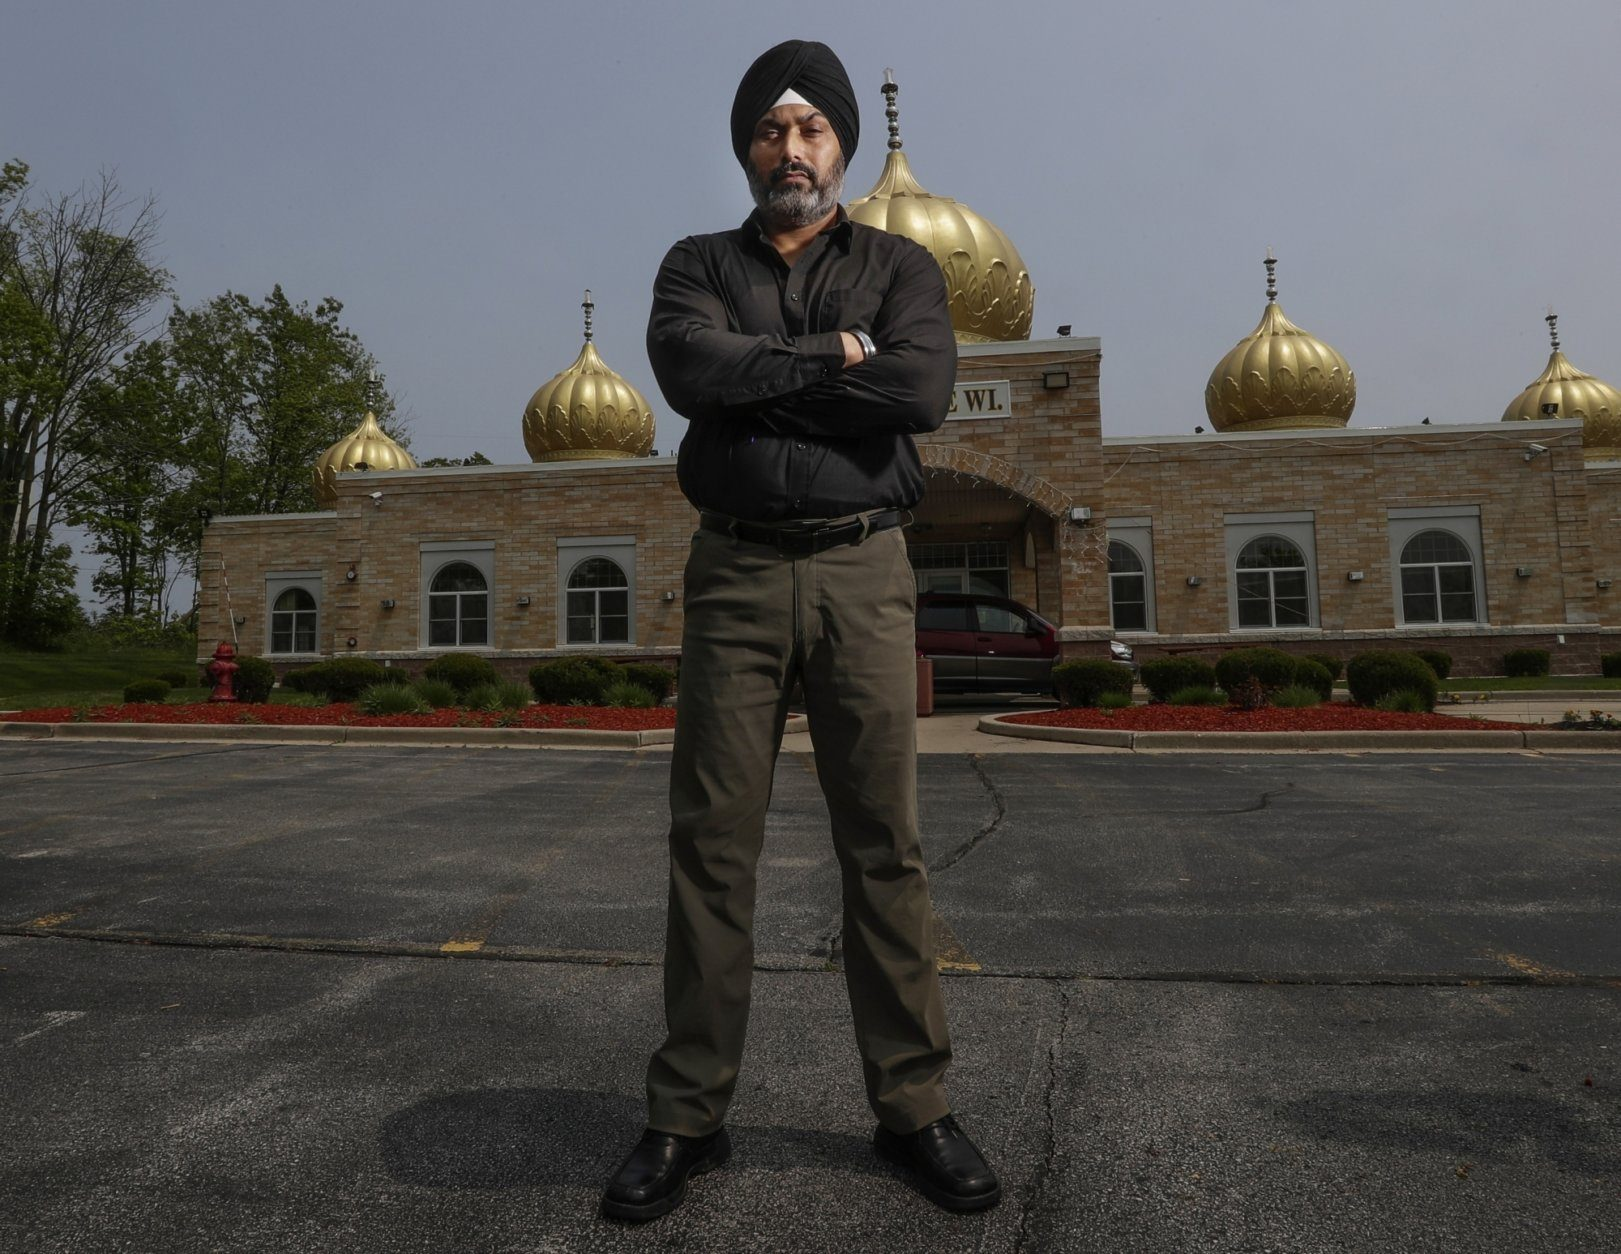 "In this Saturday, June 1, 2019 photo, Pardeep Singh Kaleka poses for a portrait outside the Sikh Temple in Oak Creek, Wis. Kaleka, whose father was one of six people killed in a 2012 mass shooting at a Sikh temple in Wisconsin, has bonded with those who've lost families in other attacks. He's traveled to Pittsburgh, Newtown, Conn. and Charleston, S.C., and says there's another instant connection with survivors from those communities. ""We're like family,"" he says. (AP Photo/Morry Gash)"